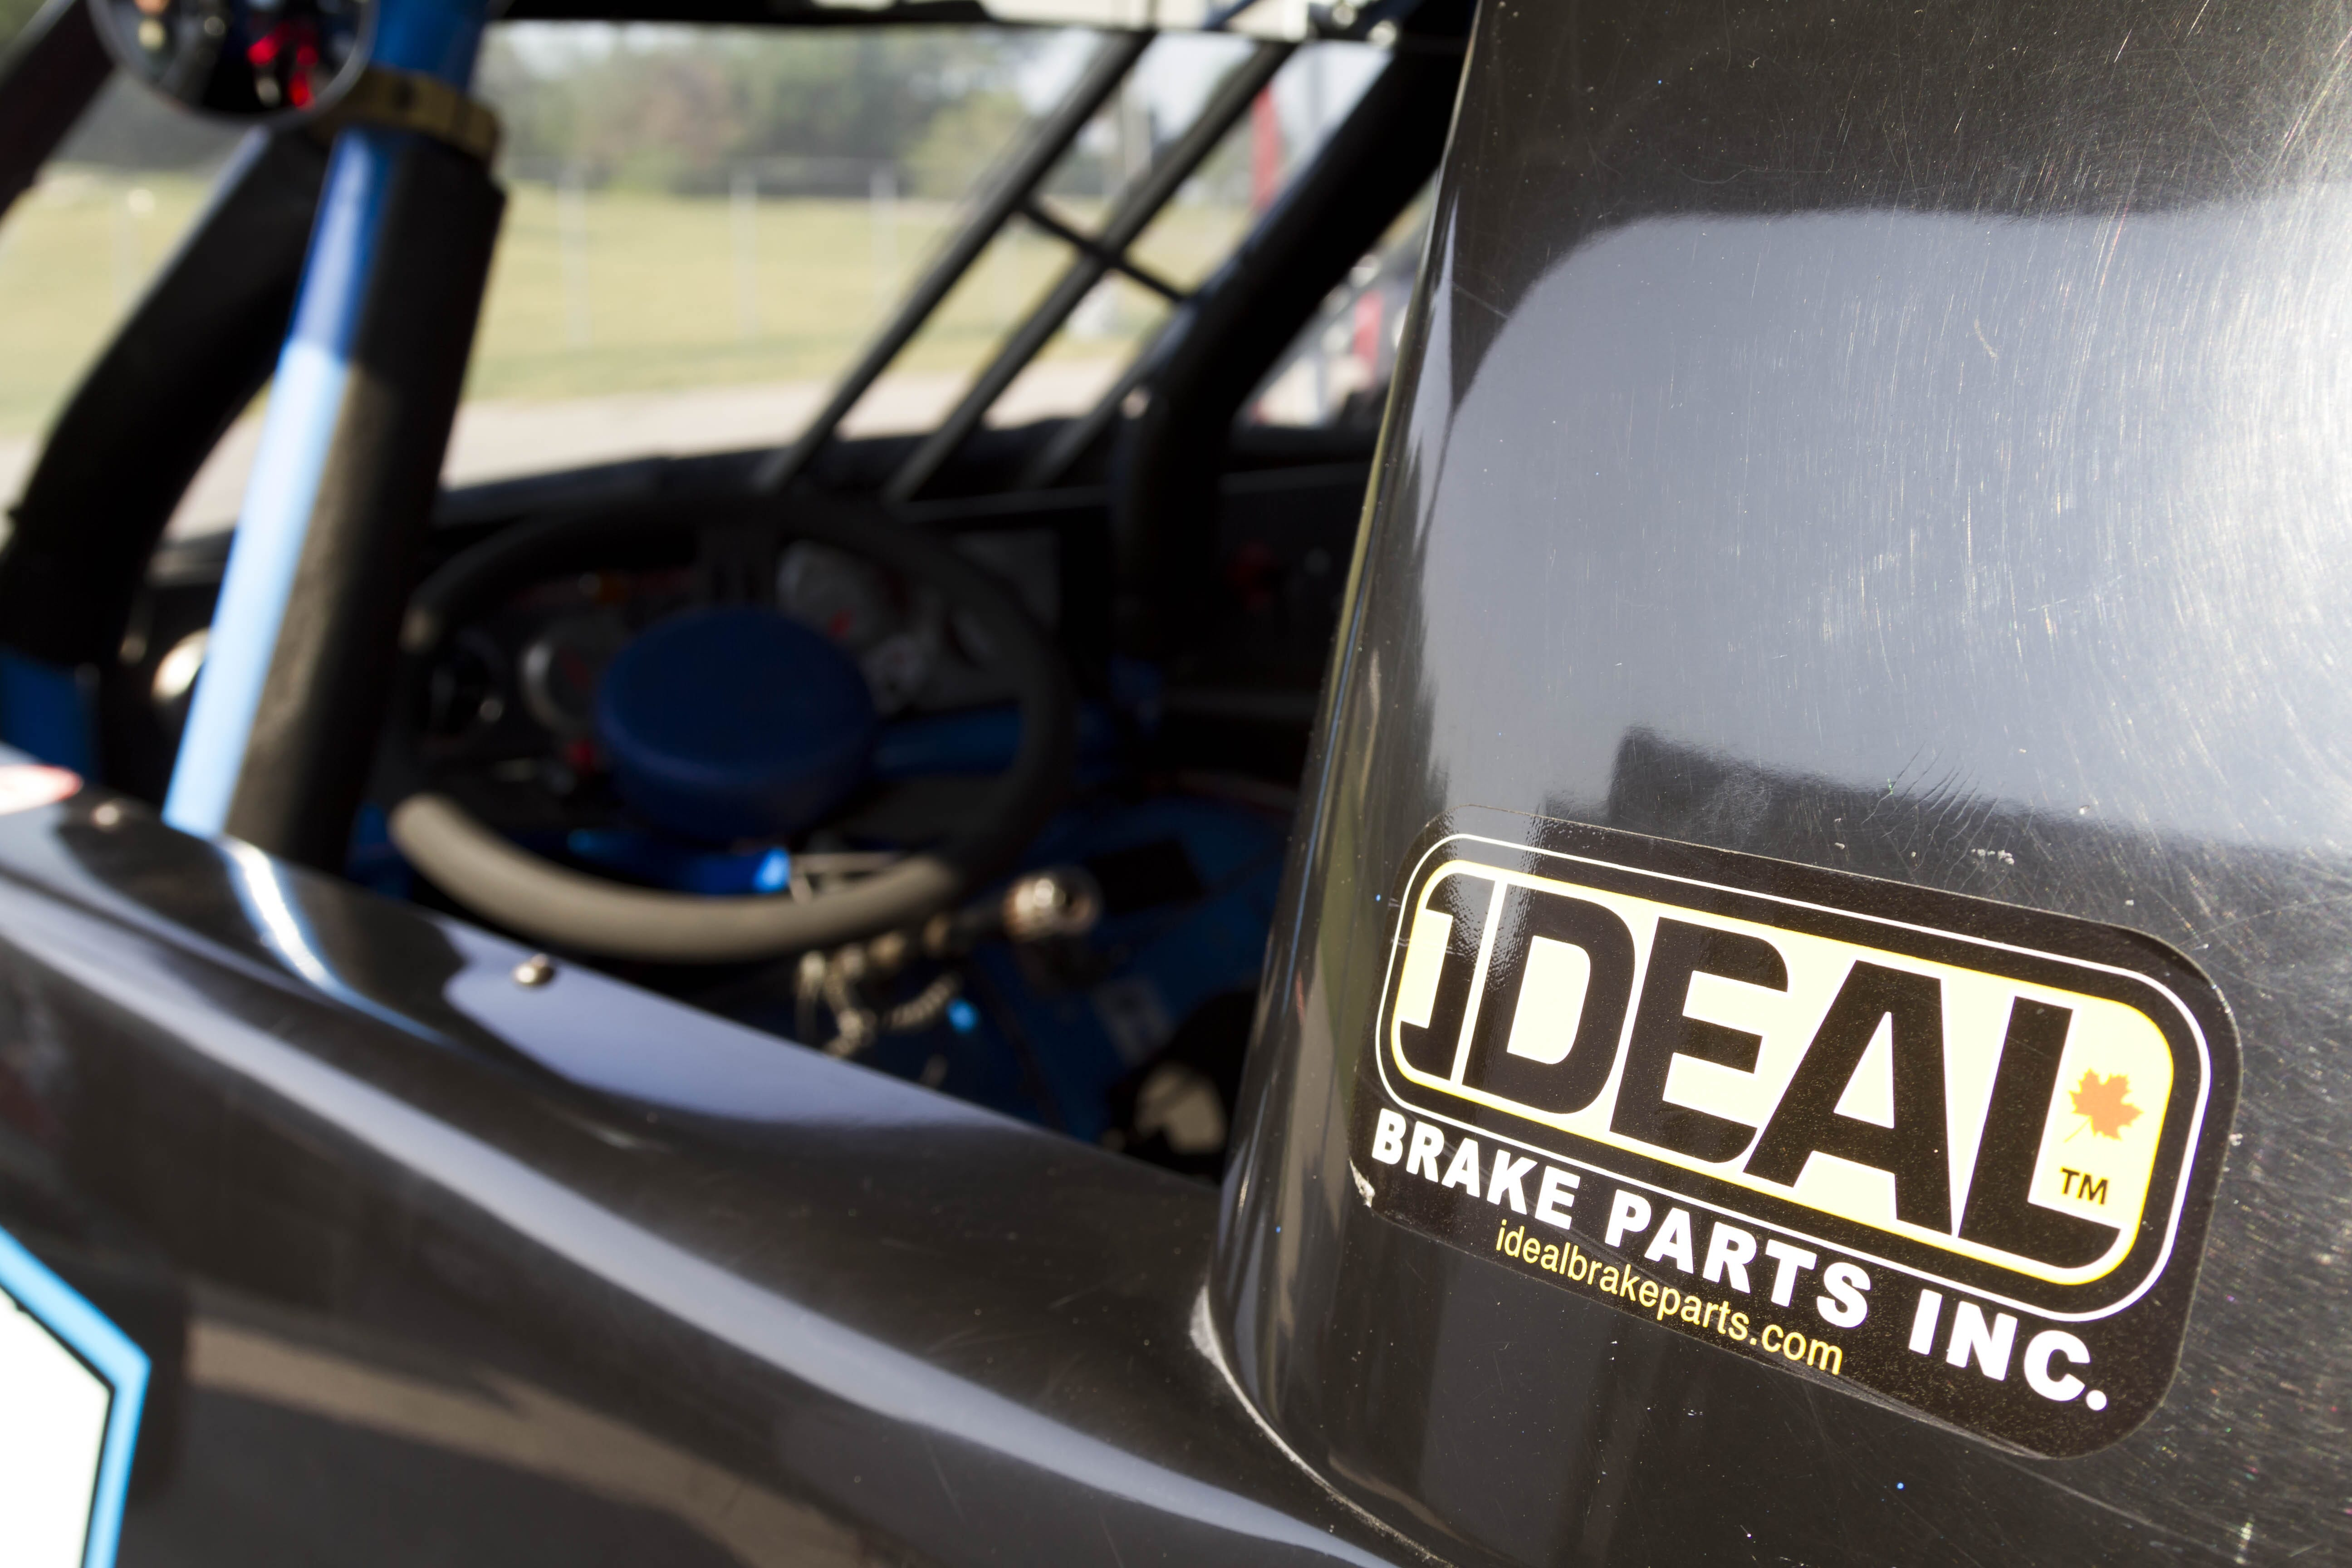 Ideal Brake Parts is the major sponsor for Chris Lawson's Ford F-150